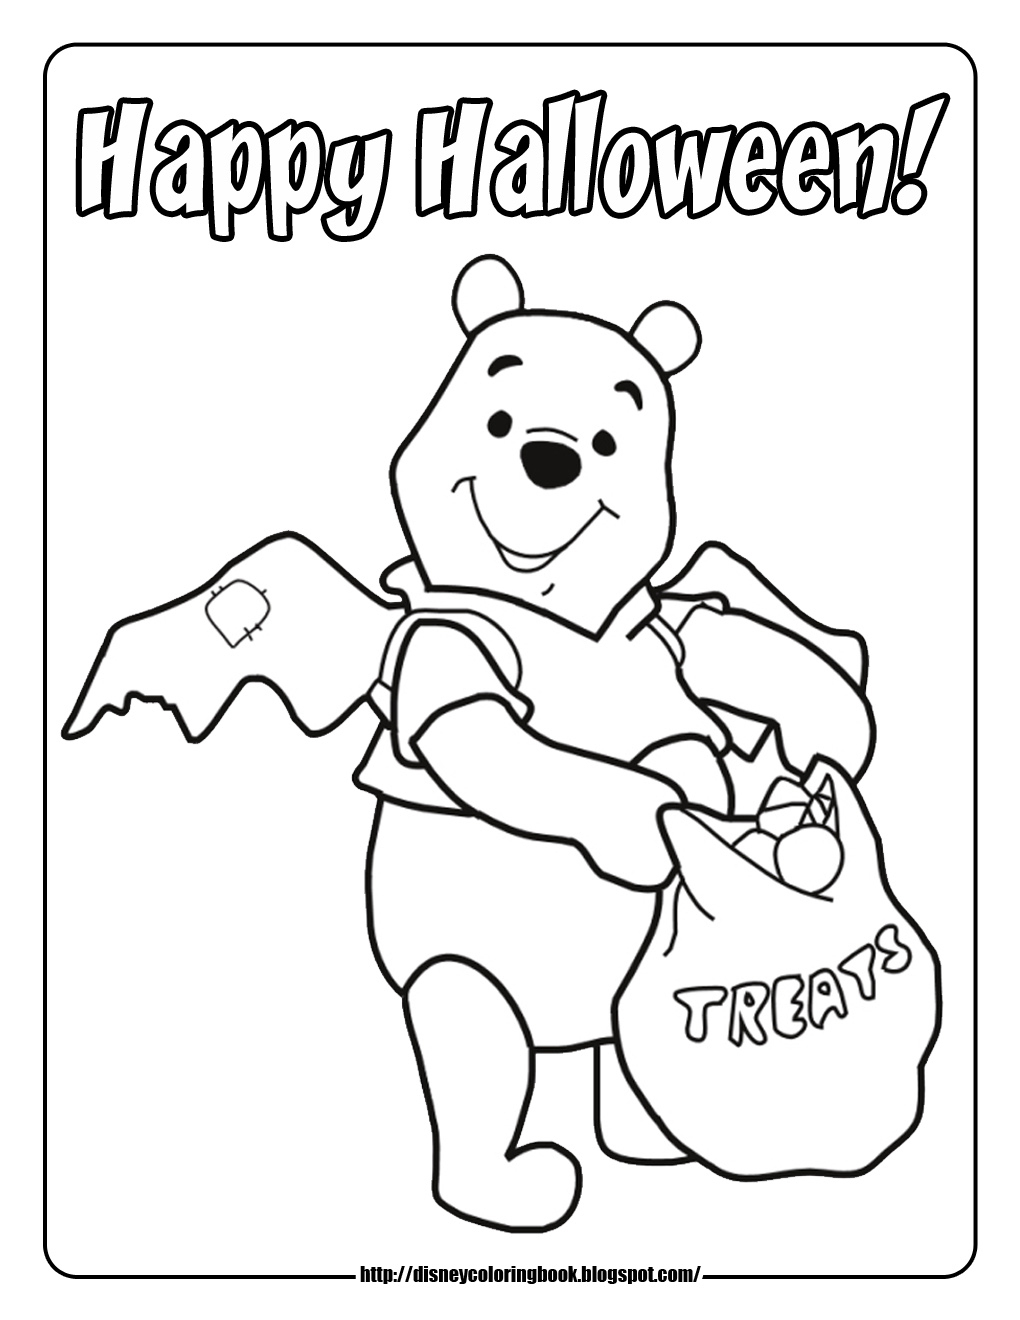 Pooh And Friends Halloween 2: Free Disney Halloween concernant Trick Or Treat Coloring Book: Trick Or